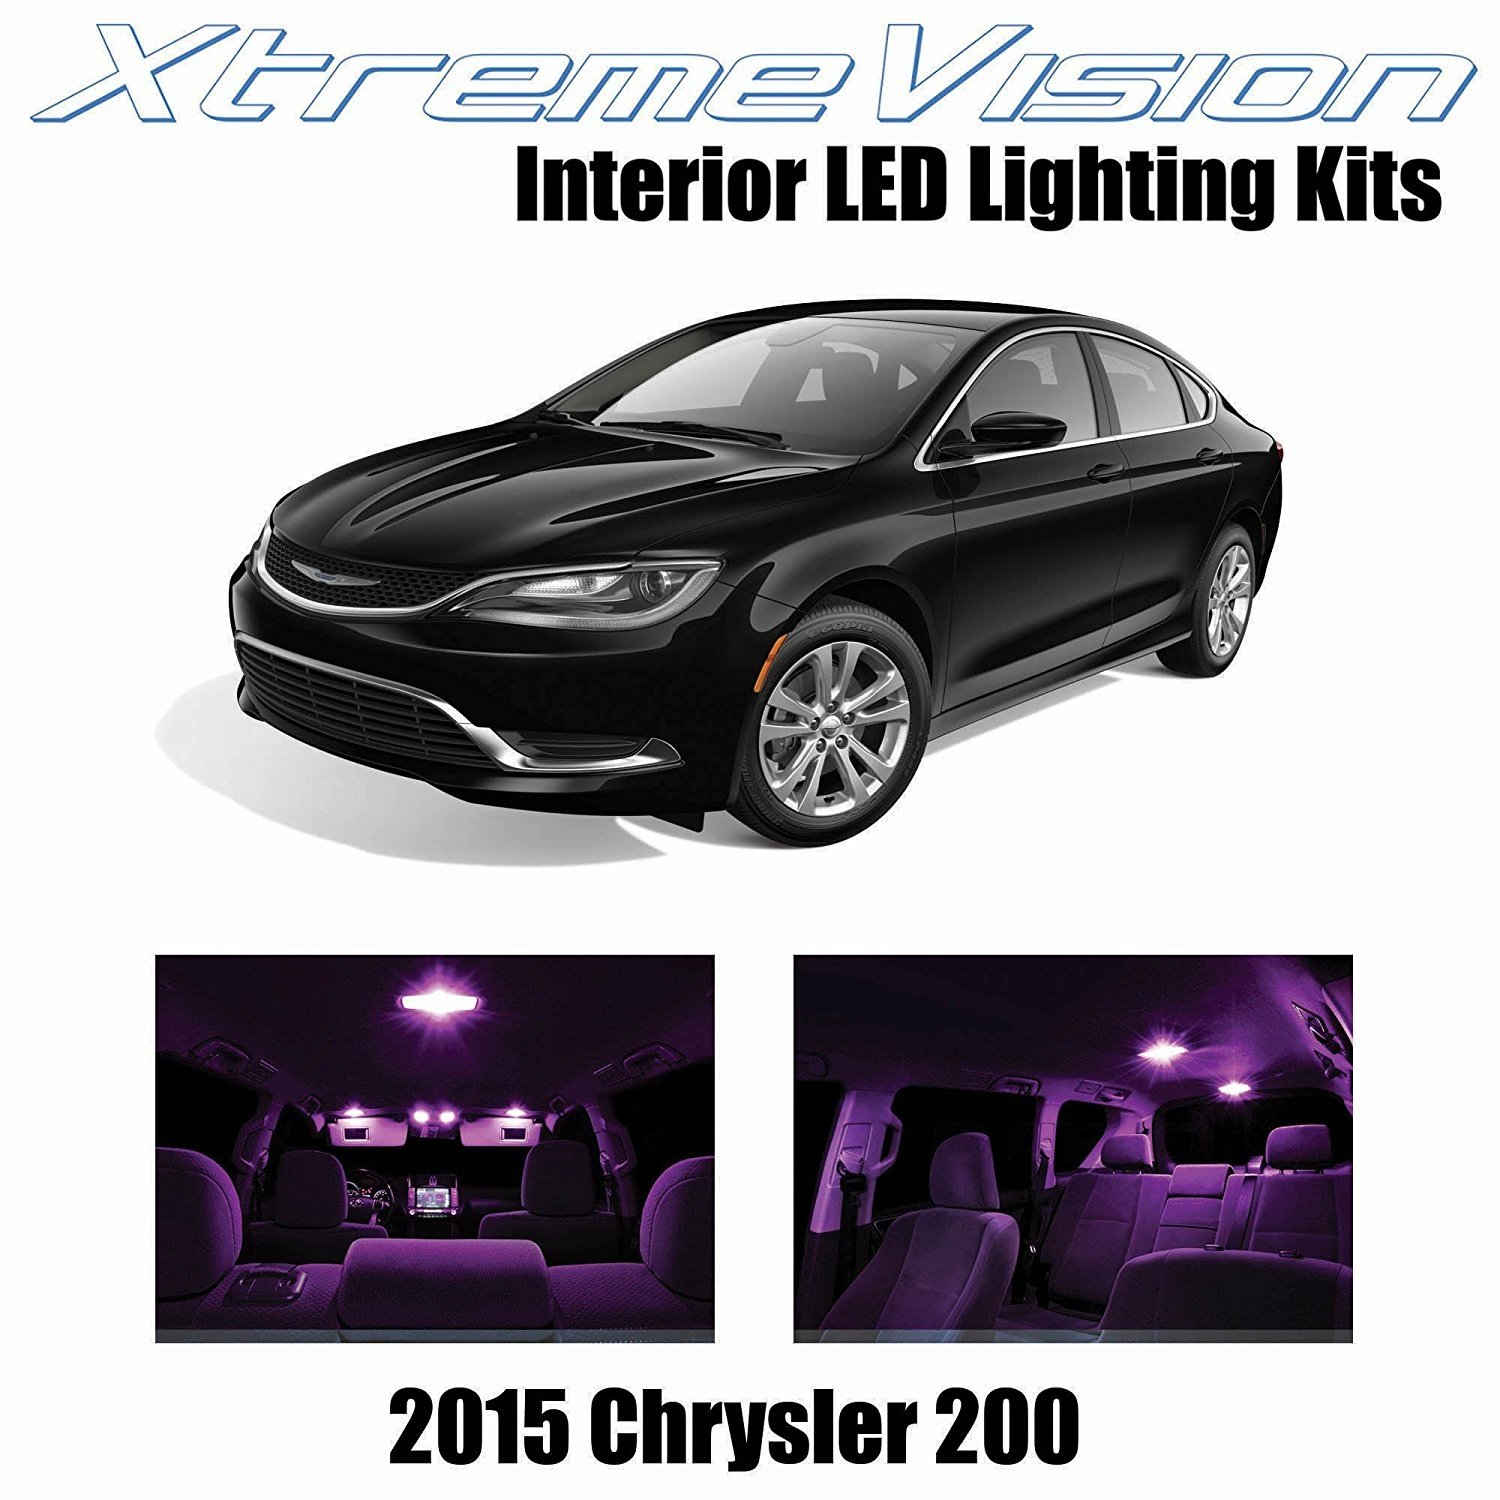 XtremeVision LED for Chrysler 200 2015+ (11 Pieces) Pink Premium Interior LED Kit Package + Installation Tool